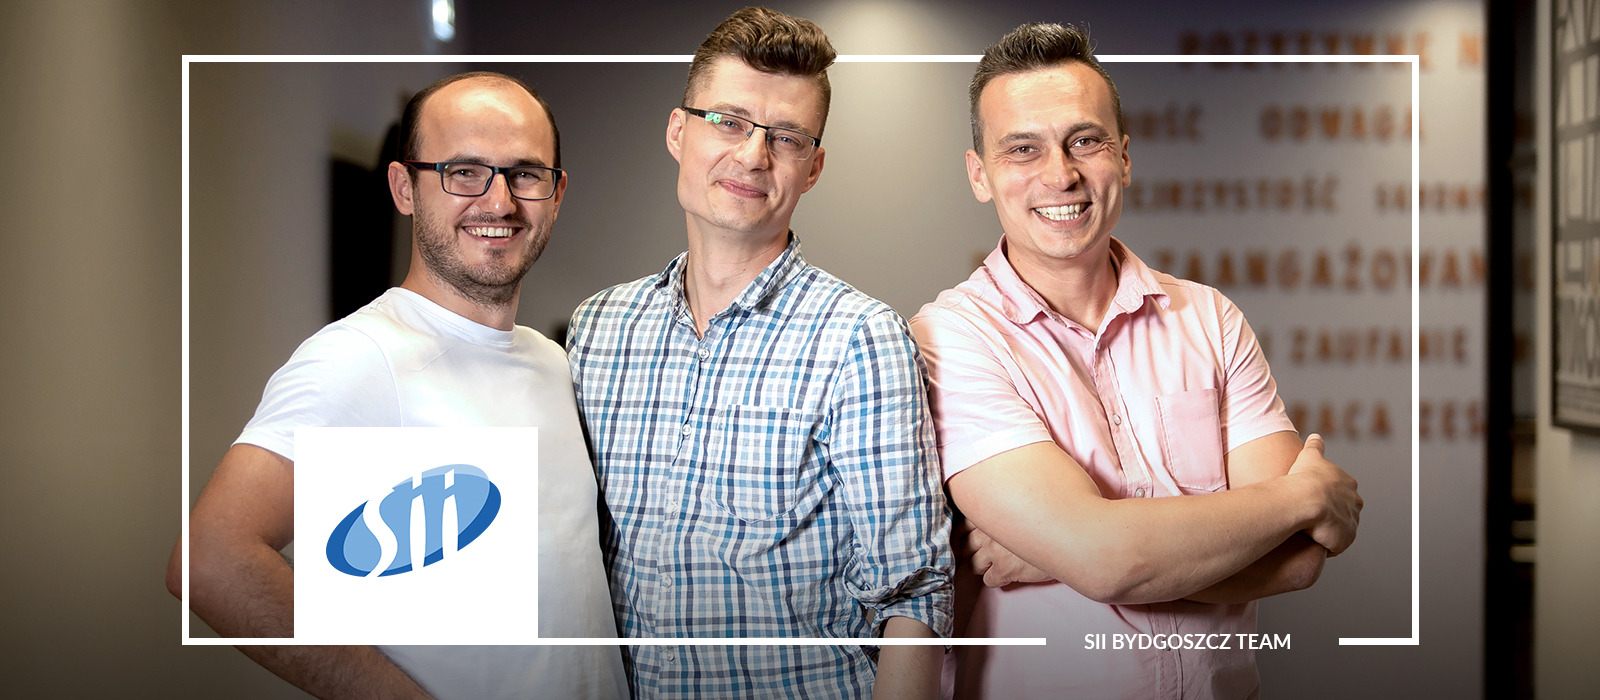 An experienced team of engineers, projects for global brands and a modern office – get to know Sii Bydgoszcz